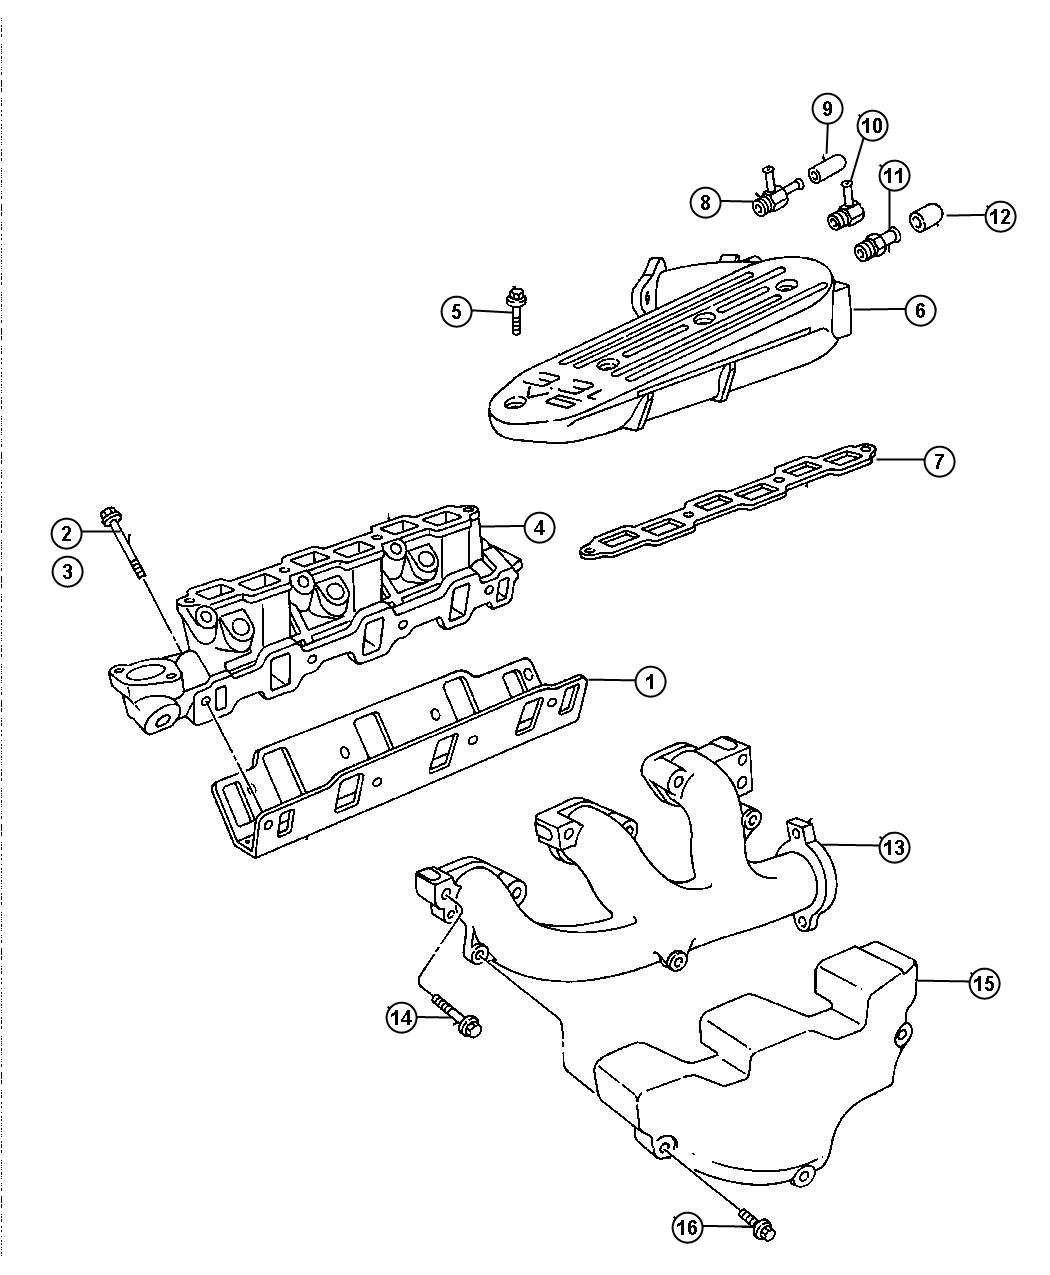 jeep cherokee parts catalogs